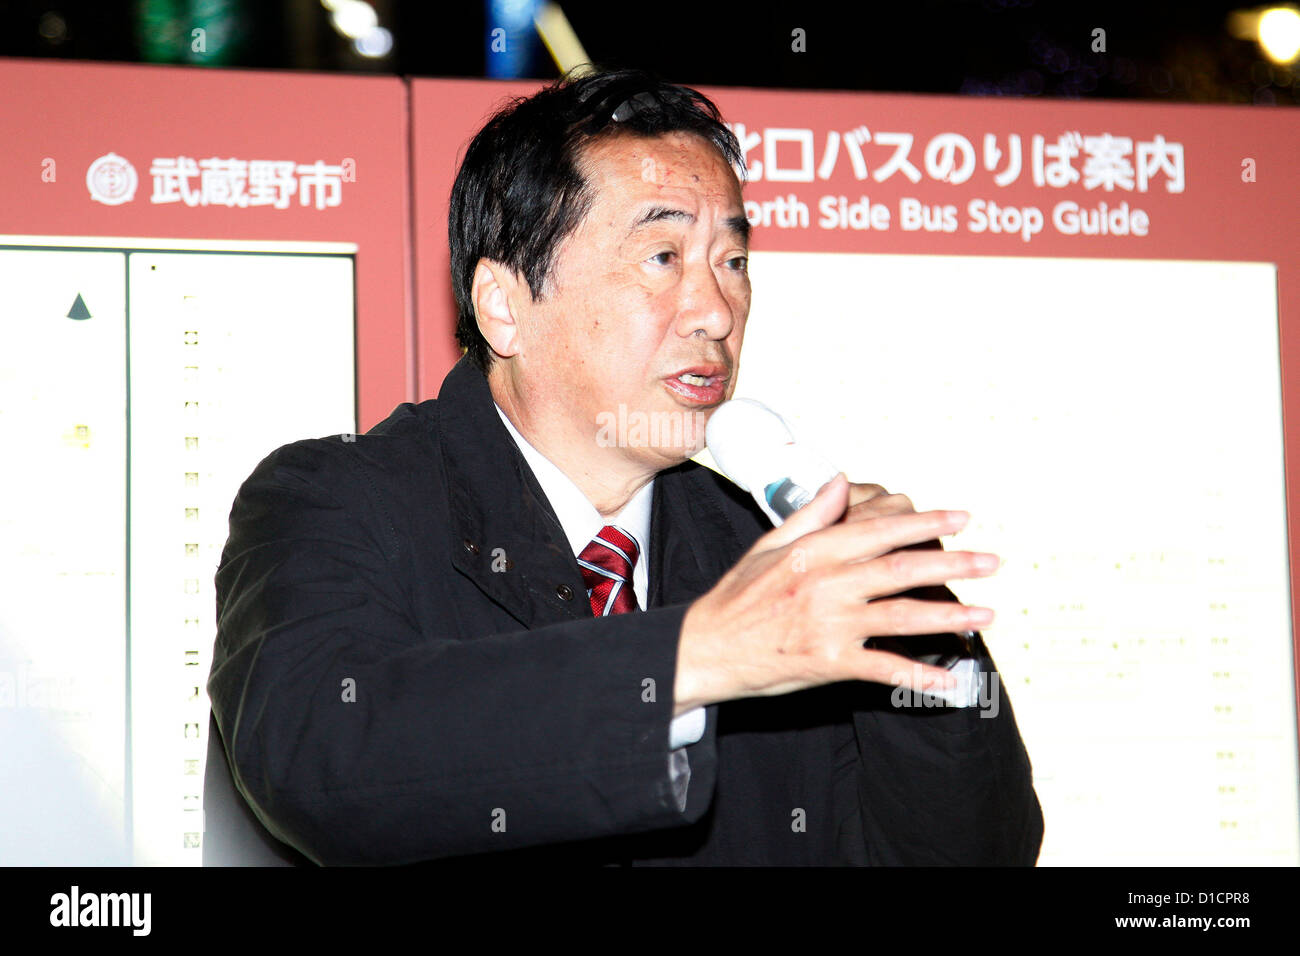 December 14, 2012, Tokyo, Japan - Ex-Prime Minister and ex-leader of Democratic Party of Japan, Naoto Kan, speaks Stock Photo